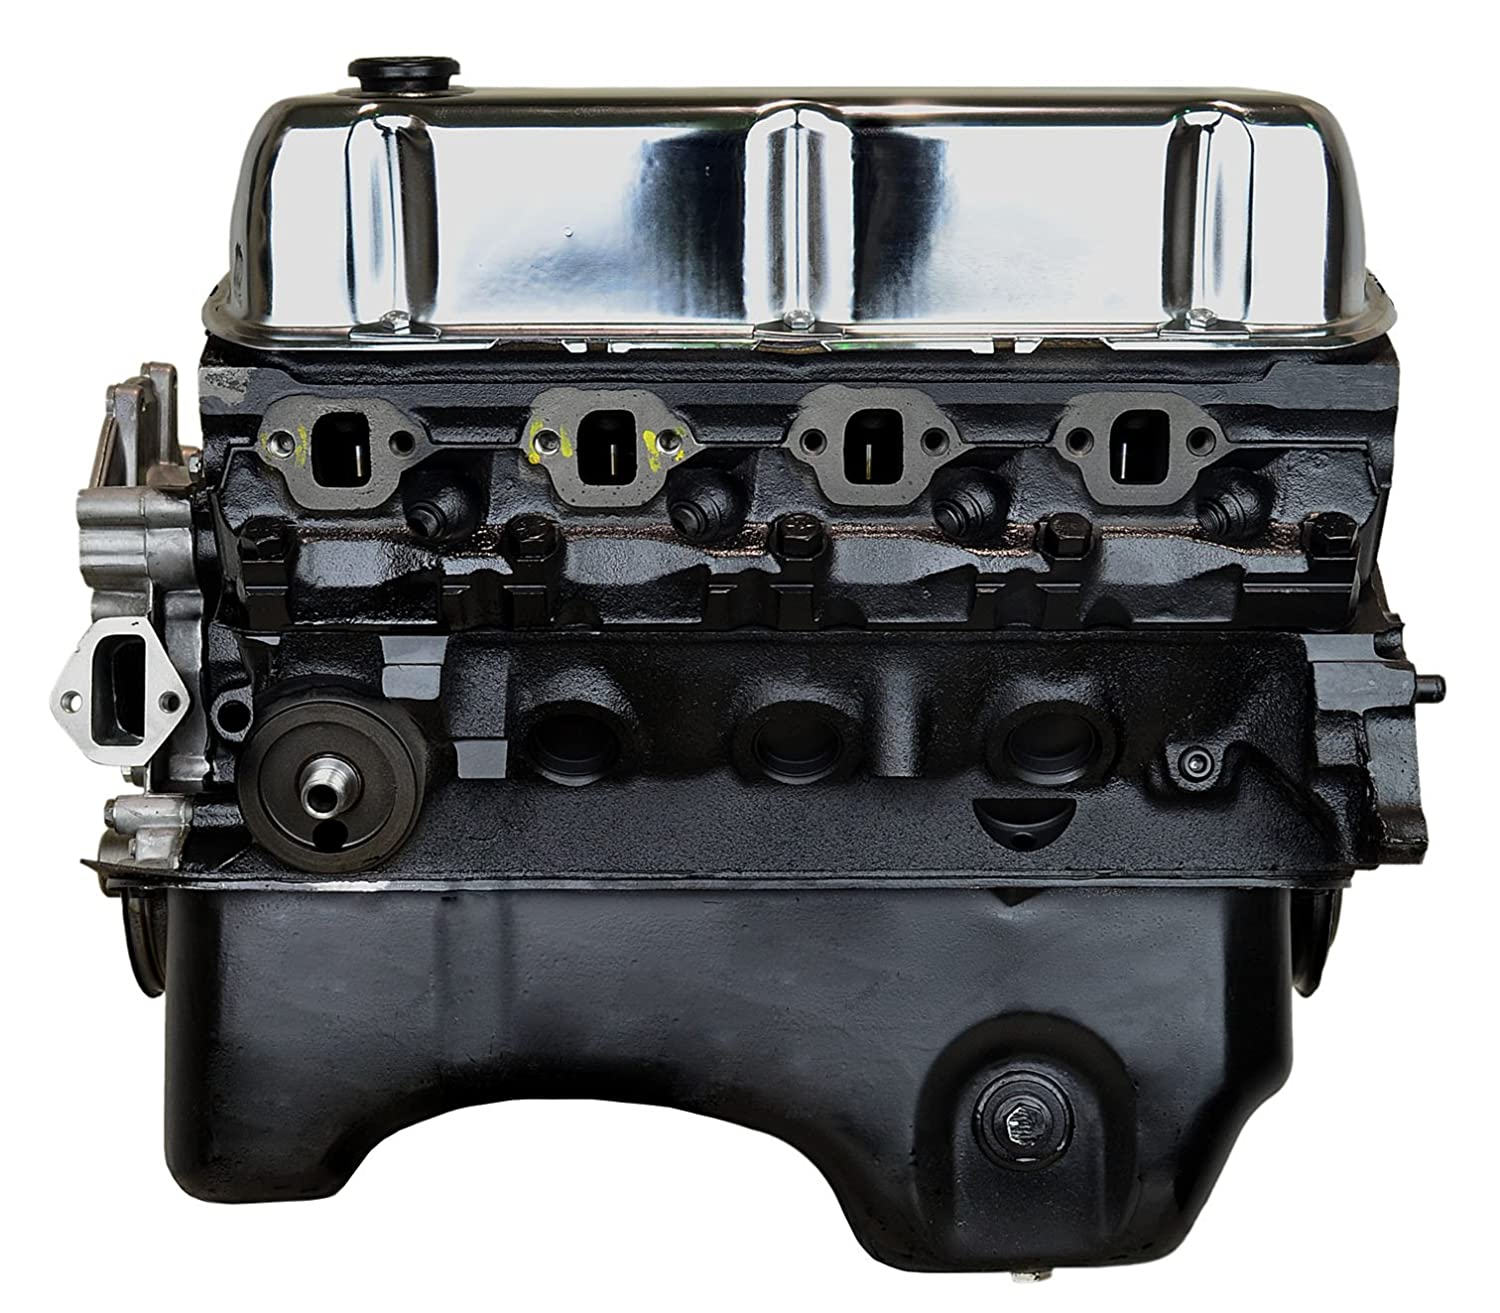 PROFessional Powertrain VF14 Ford 302 Complete Engine, Remanufactured PROFormance Powertrain